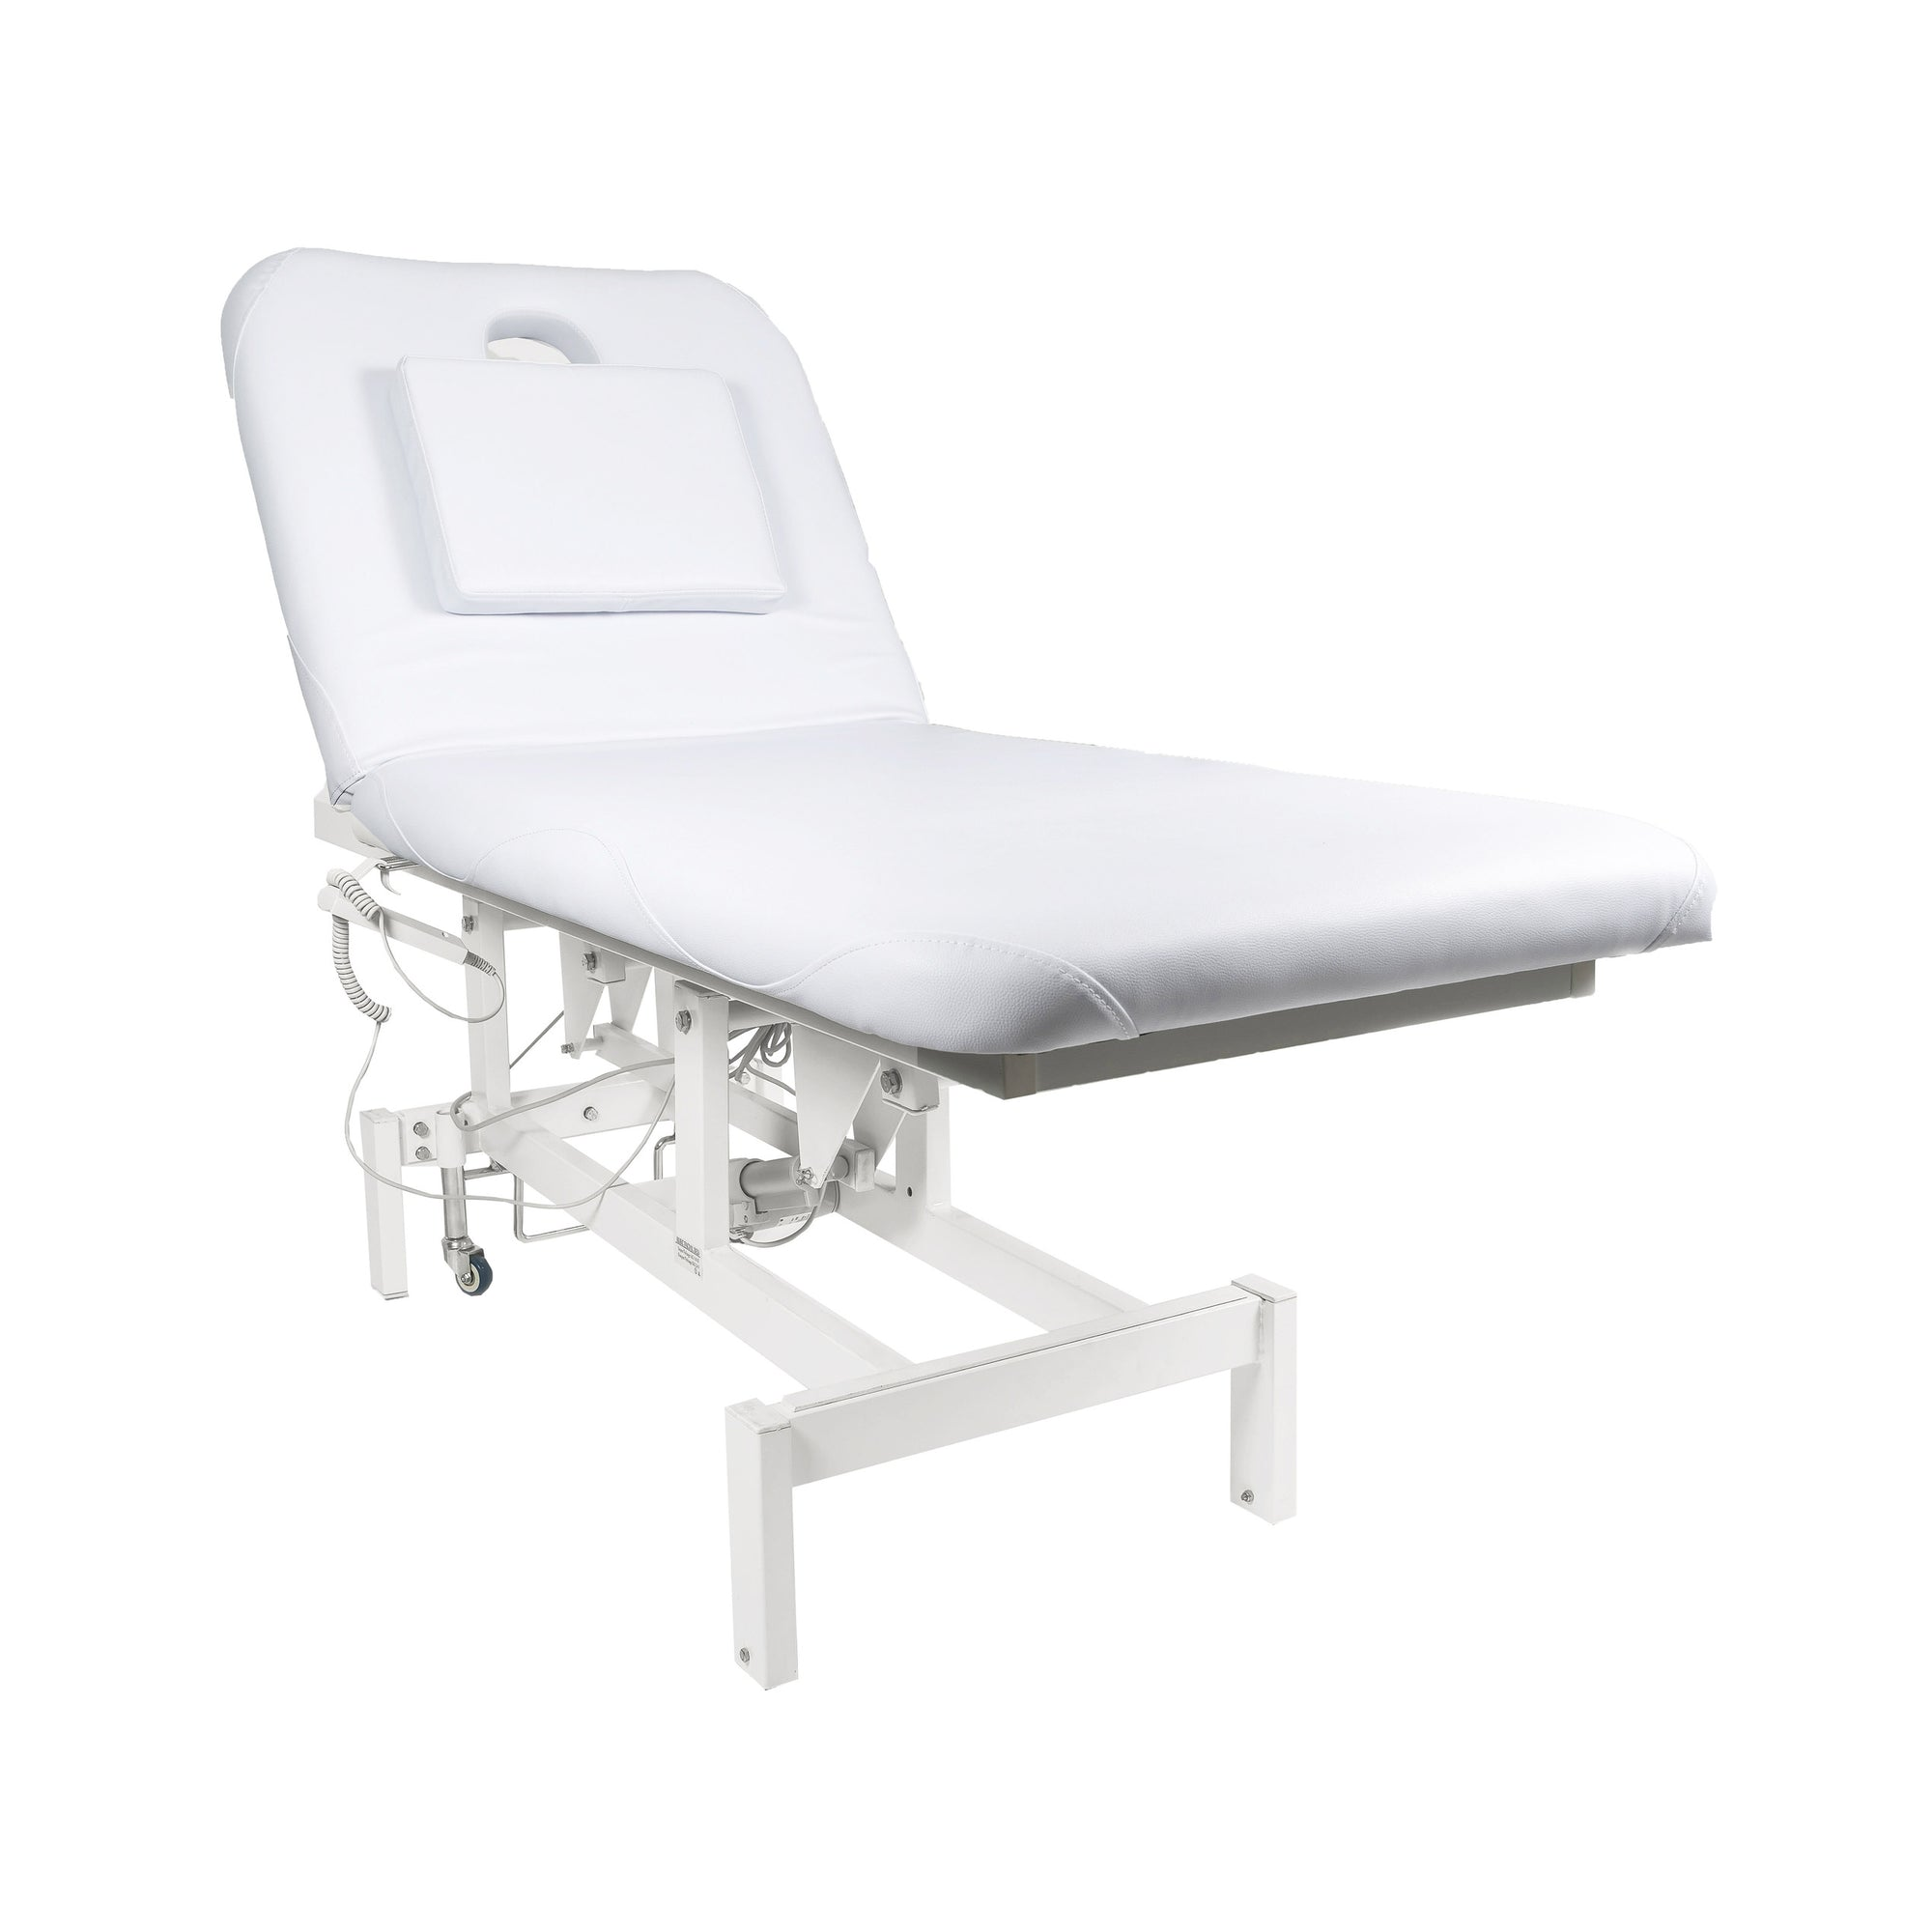 Beauty Salon Adjustable Electric Design Folding Spa Tattoo Acupuncture Massage Bed